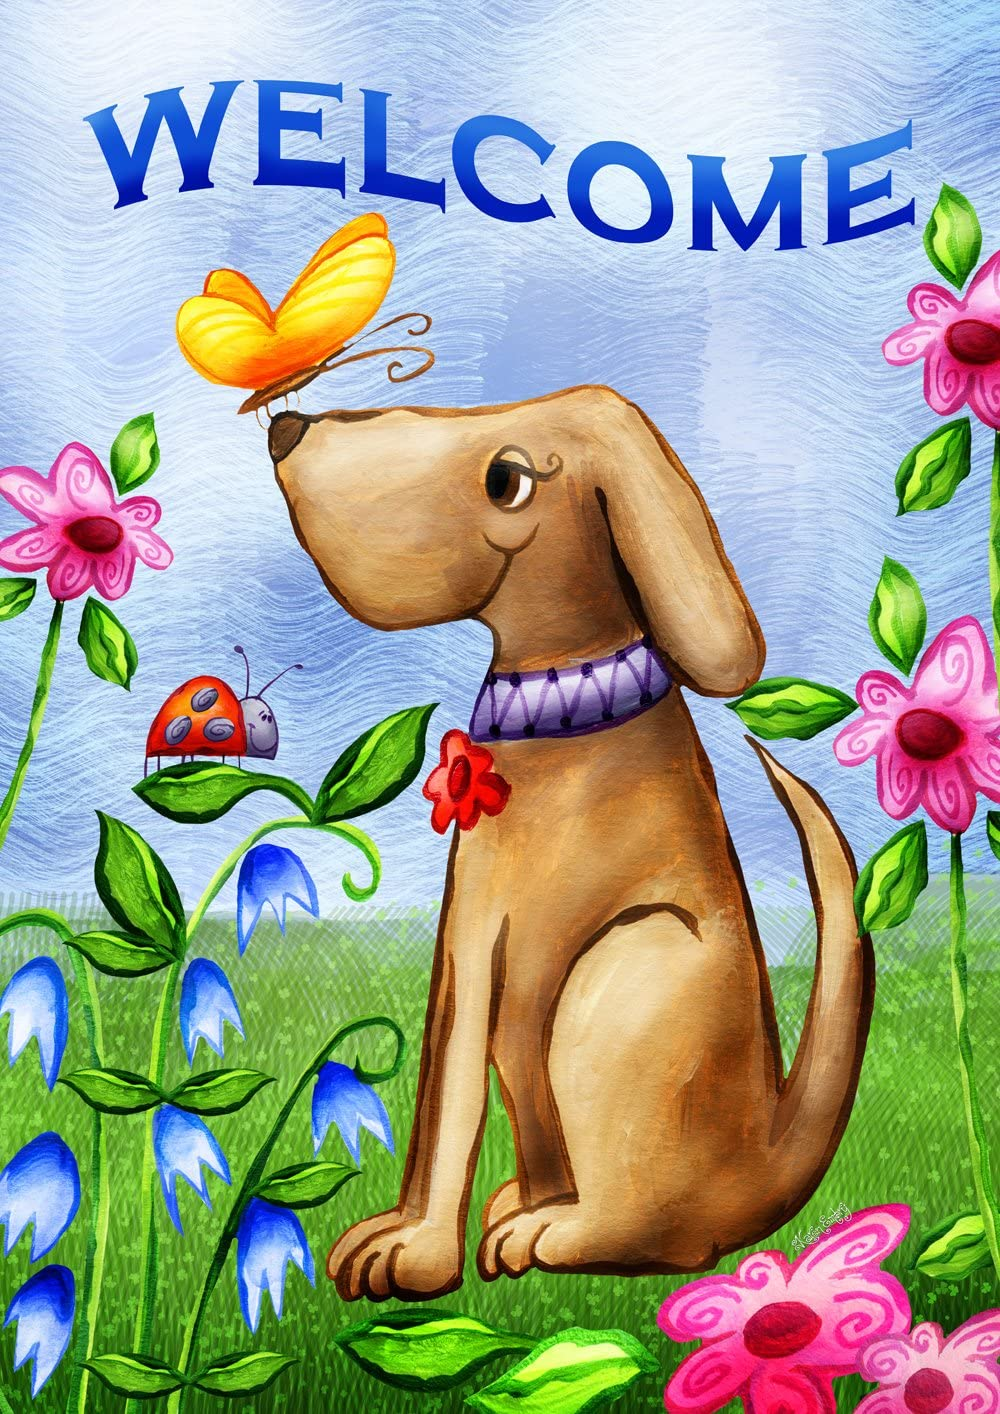 "Toland Home Garden 112078 Welcome Dog 12.5 x 18 Inch Decorative, Garden Flag (12.5"" x 18""), Double Sided"